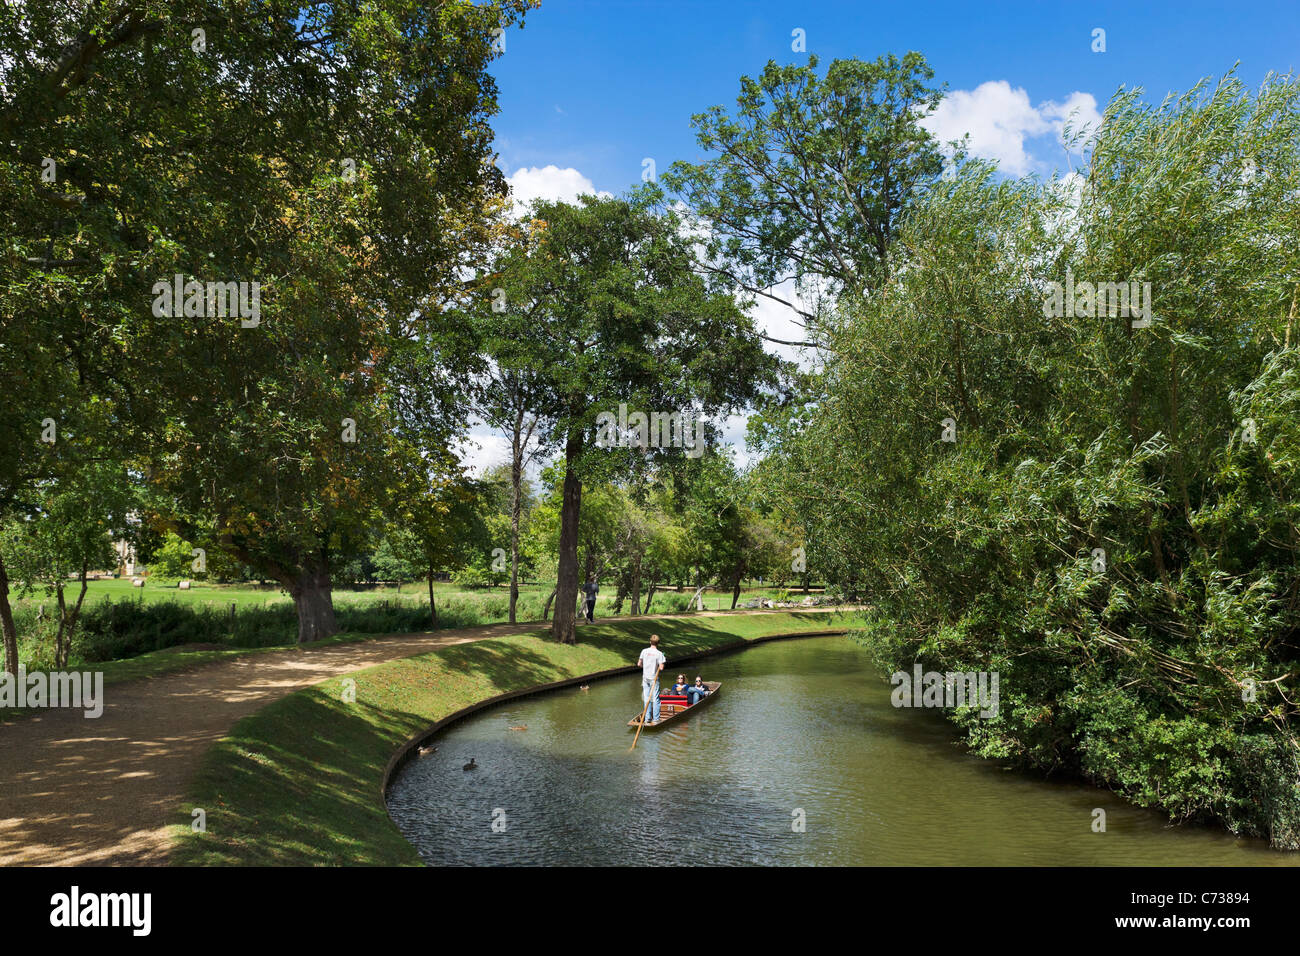 Punting on the River Cherwell near Christ Church Meadow, Oxford, Oxfordshire, England, UK - Stock Image